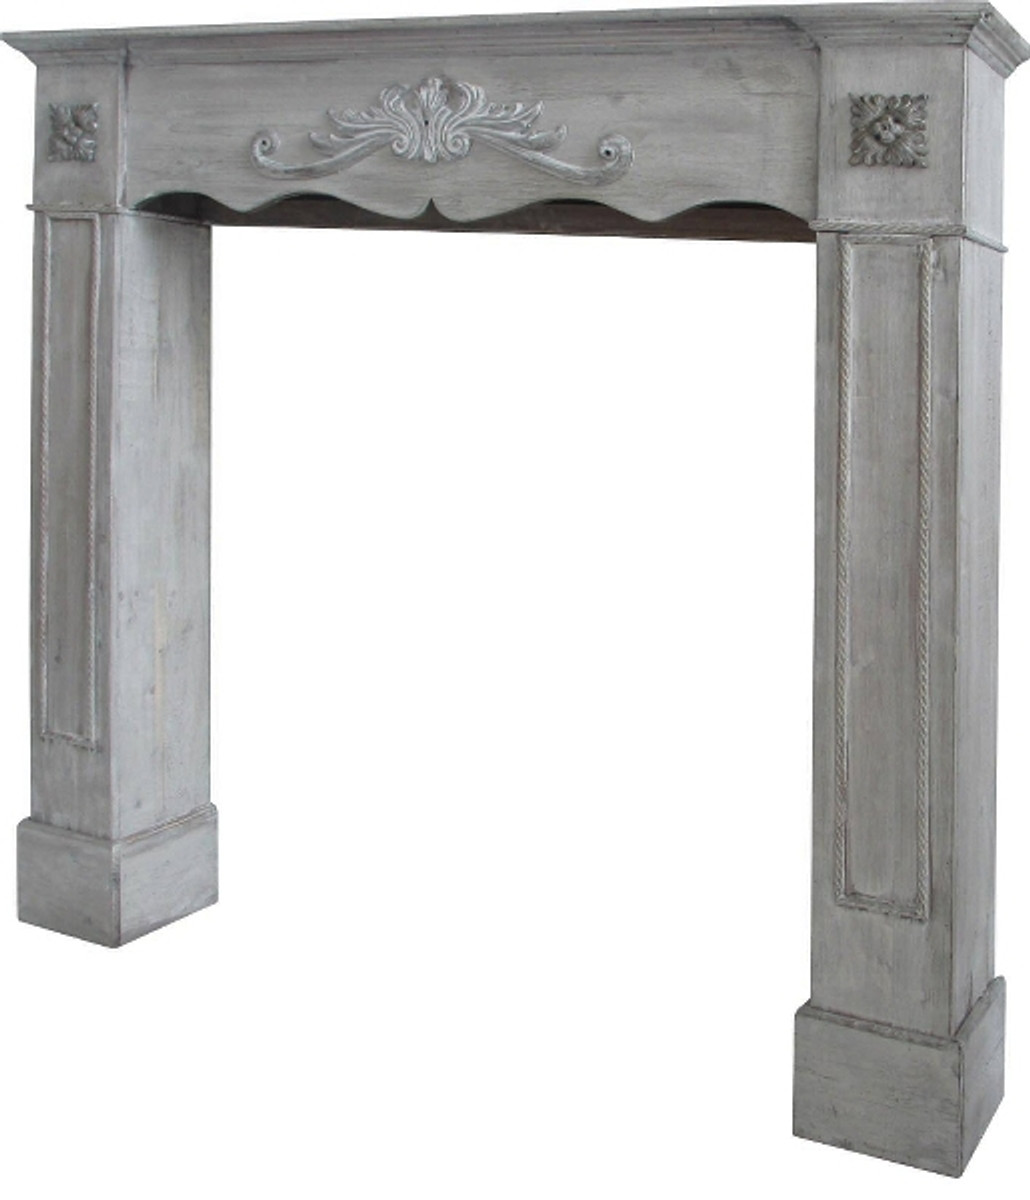 casa padrino country style fireplace surround antique gray 105 x 17 x h 102 cm handmade. Black Bedroom Furniture Sets. Home Design Ideas